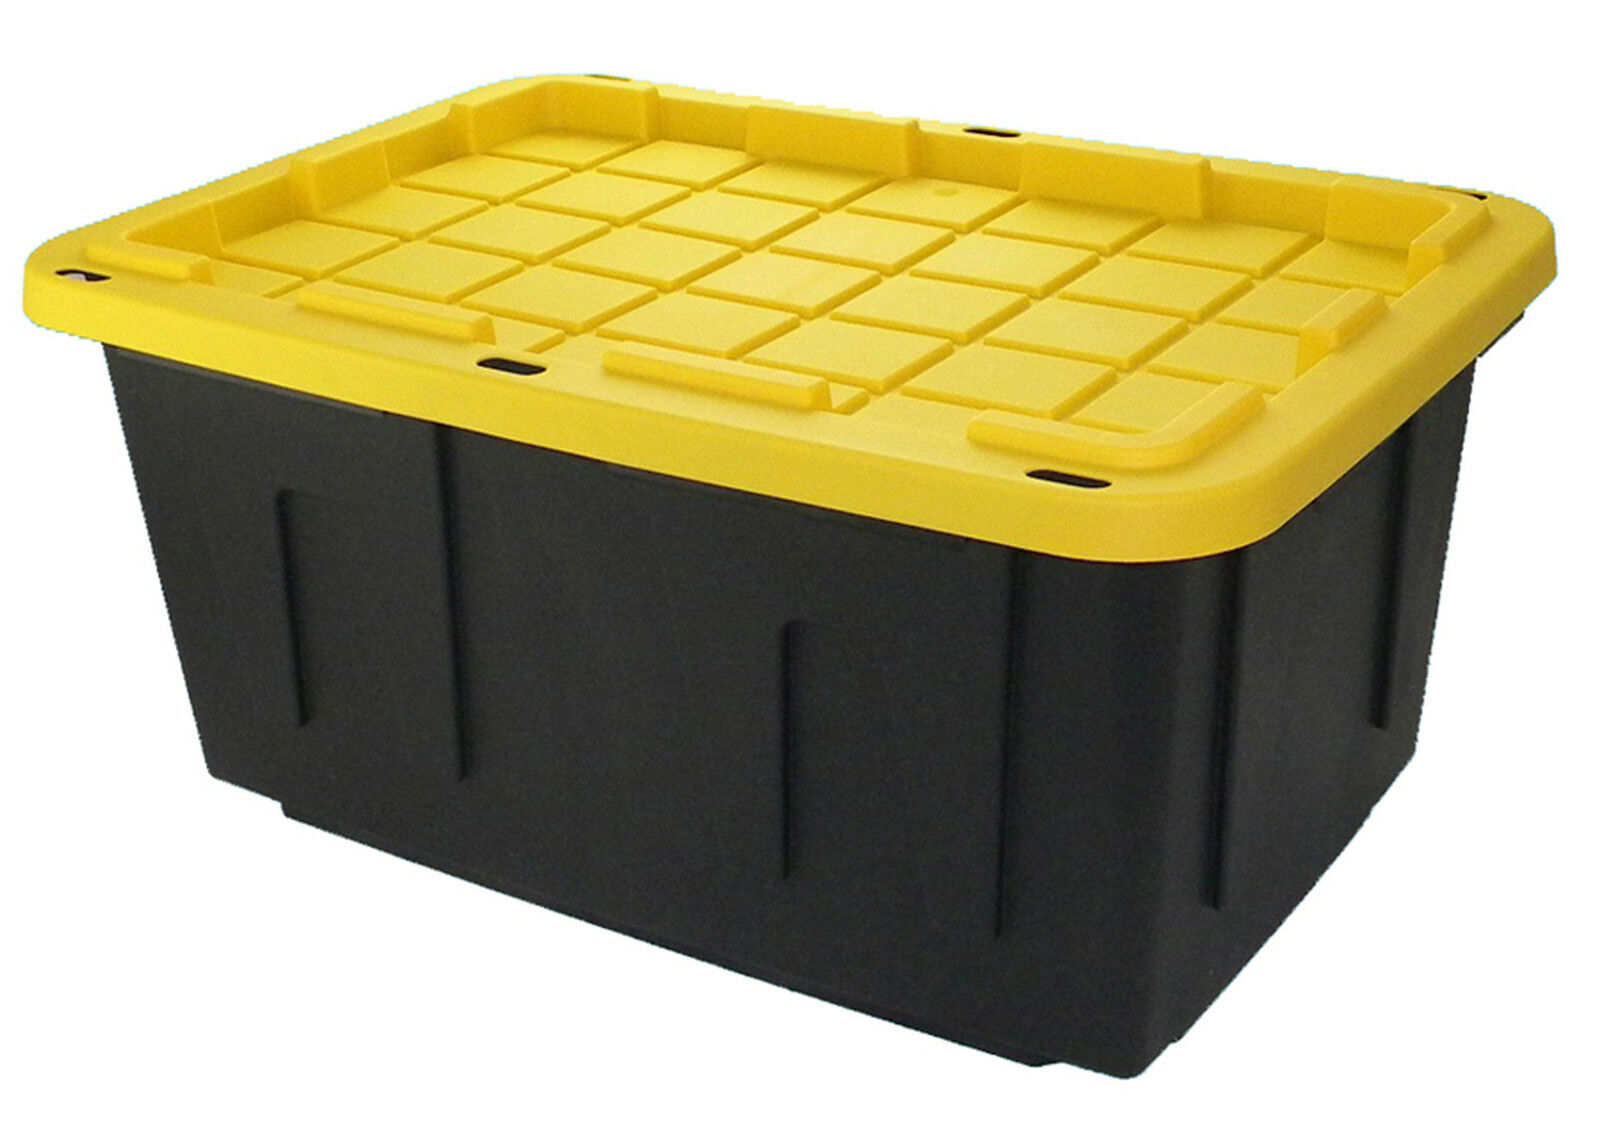 Garage Storage Boxes Heavy Duty Large 26x18x12 15gallon Industrial Plastic